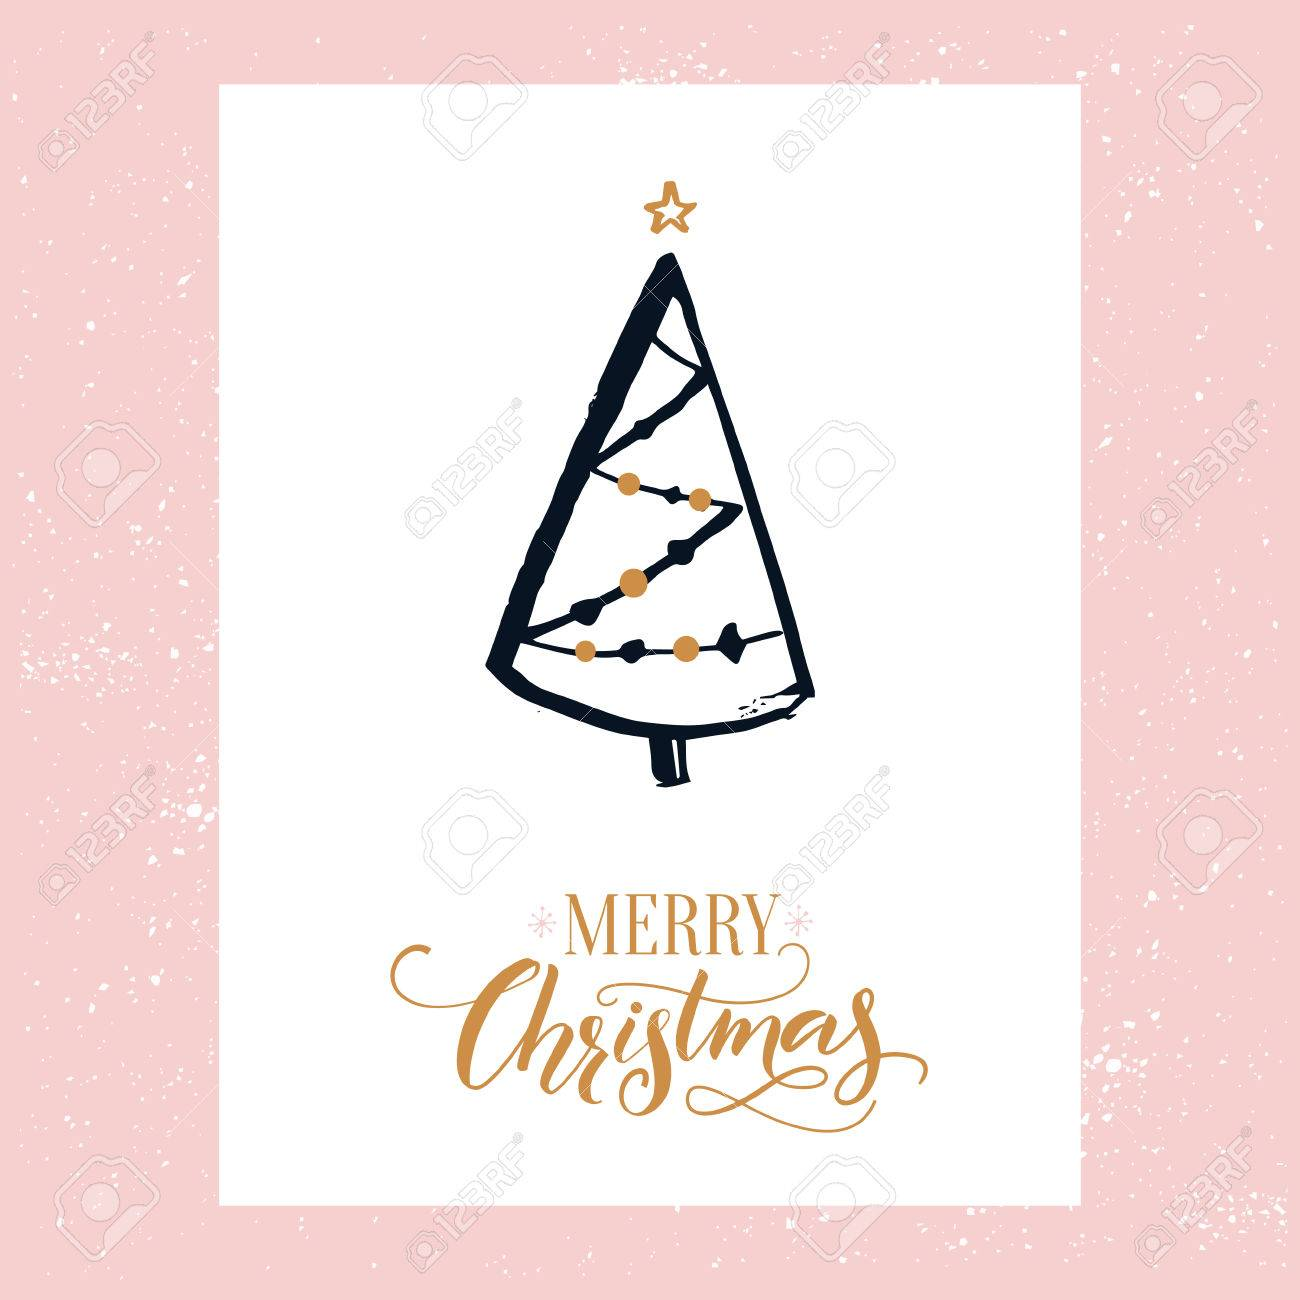 simple merry christmas card design with decorated hand drawn